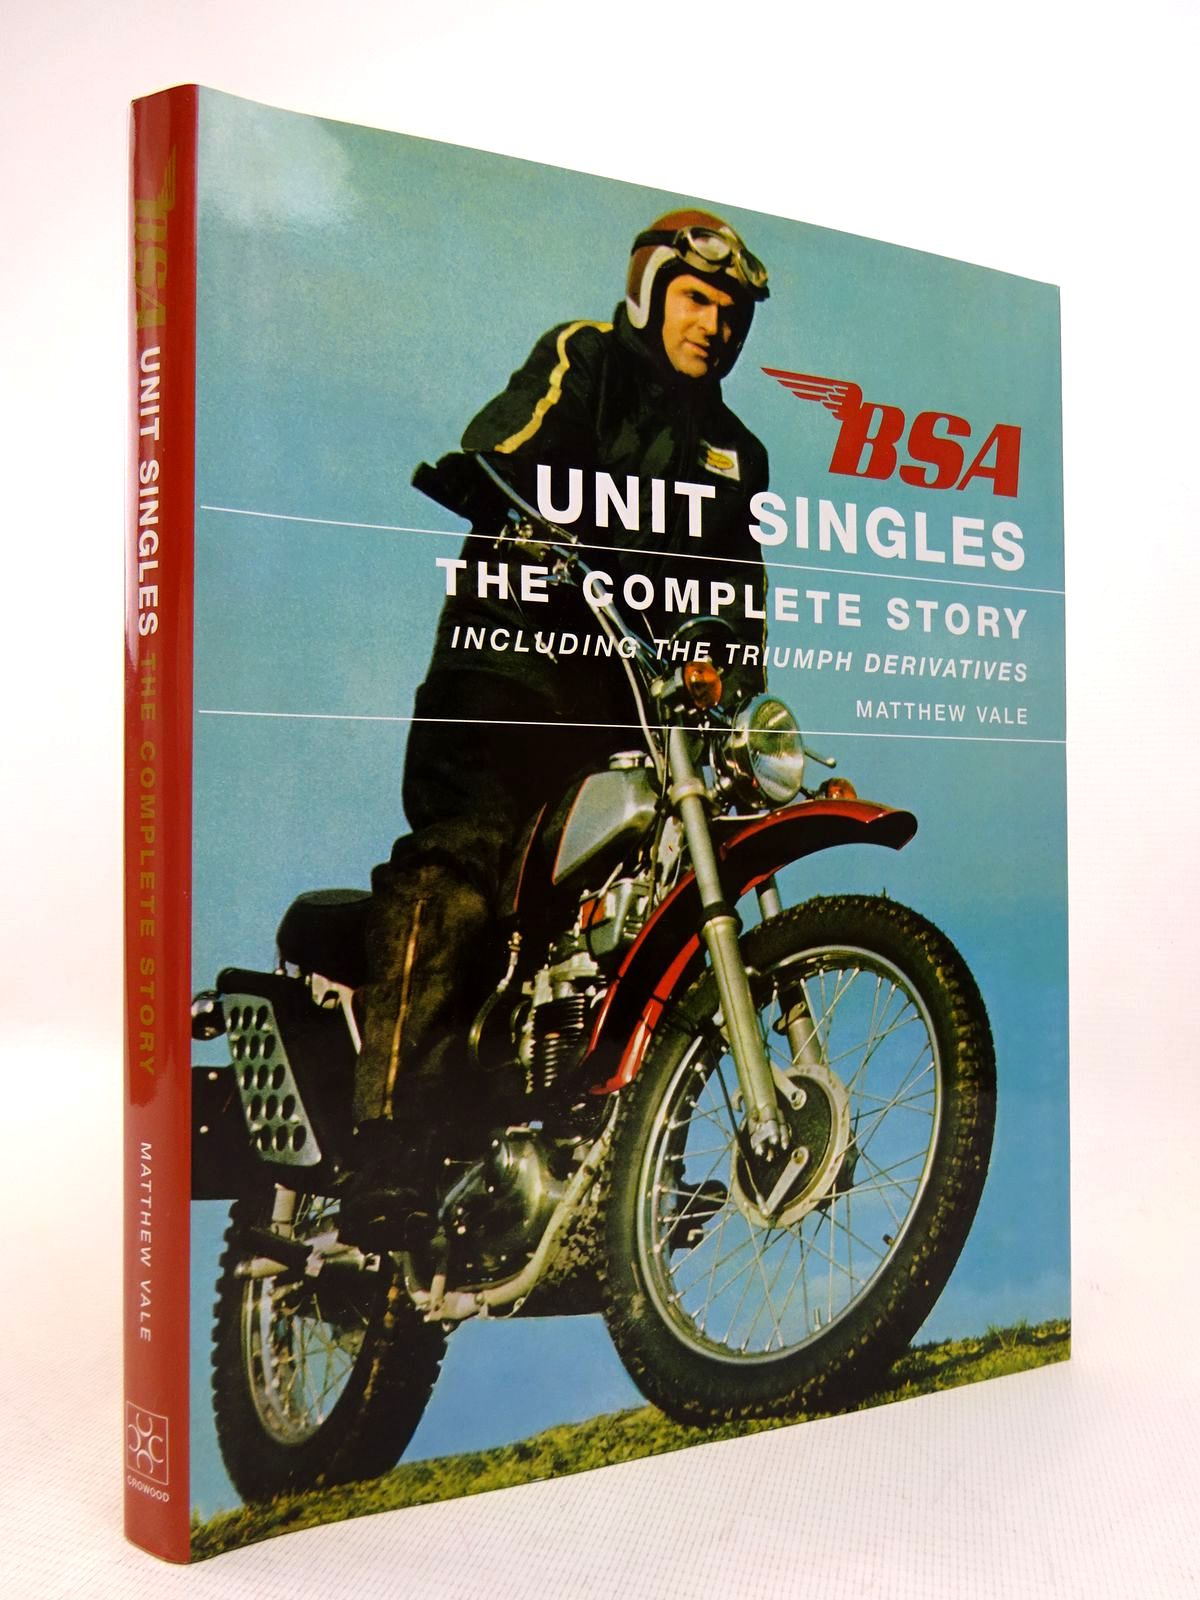 Photo of BSA UNIT SINGLES: THE COMPLETE STORY INCLUDING THE TRIUMPH DERIVATIVES written by Vale, Matthew published by The Crowood Press (STOCK CODE: 1816973)  for sale by Stella & Rose's Books